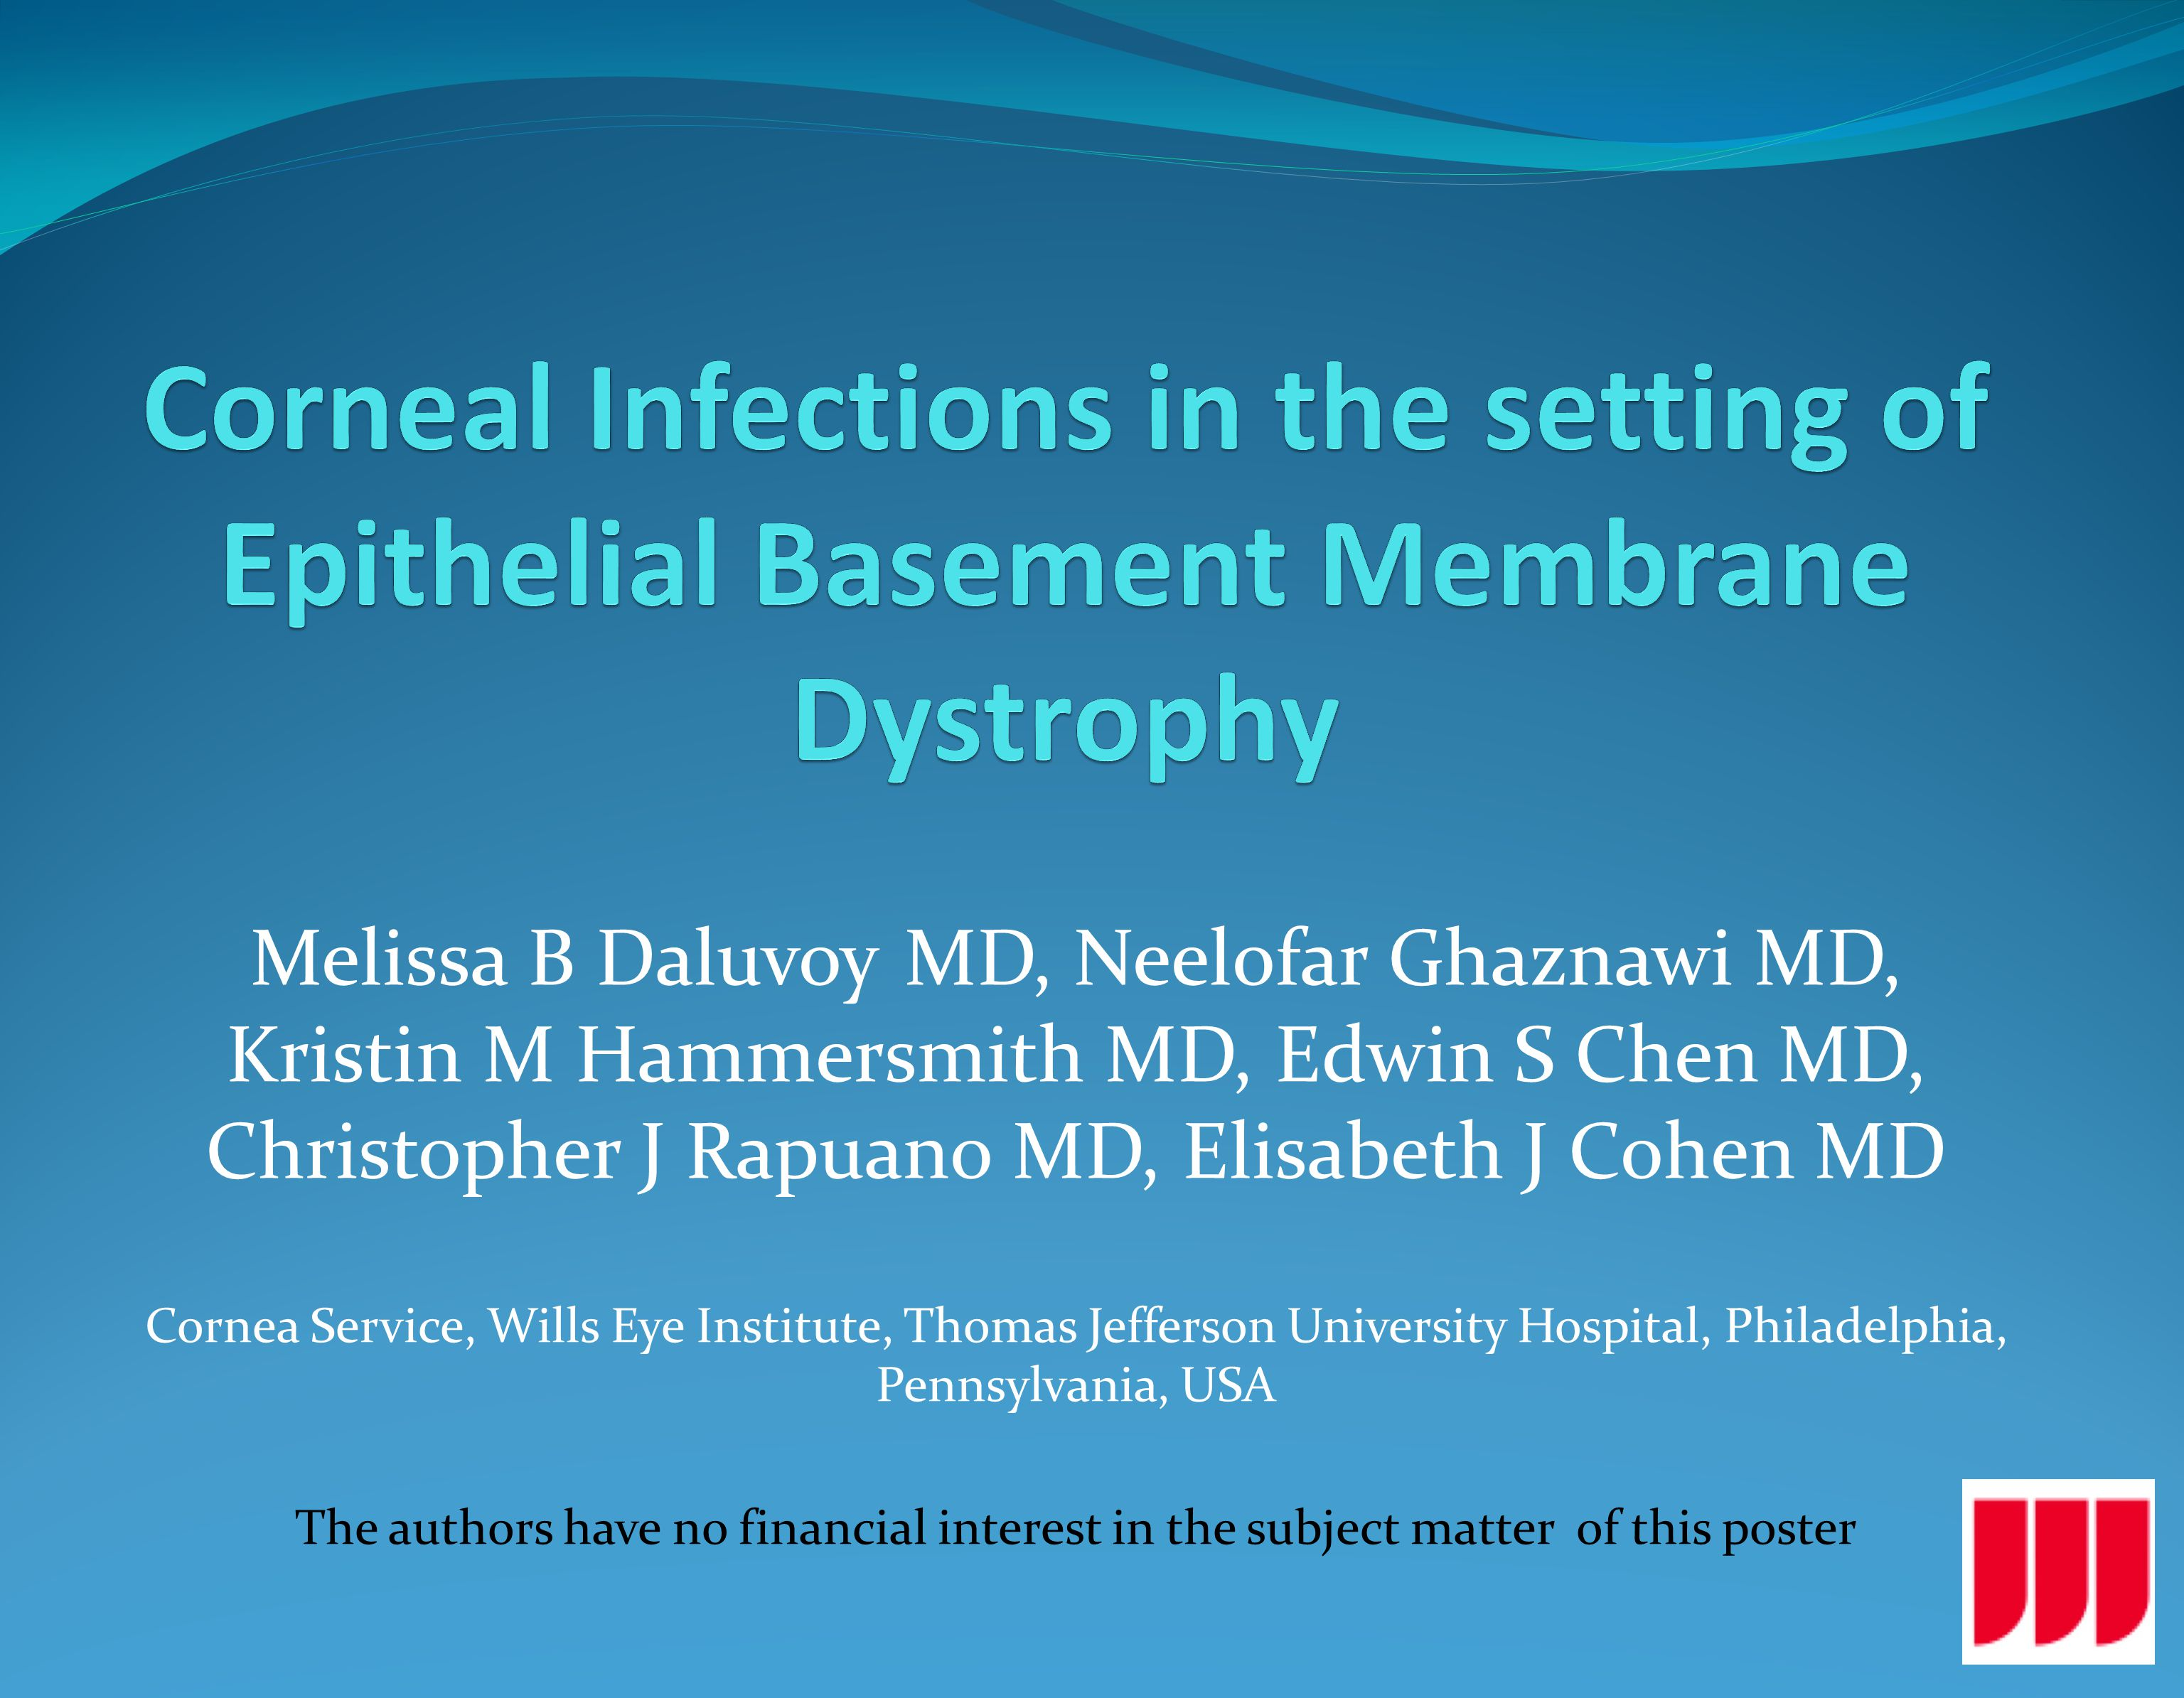 Melissa B Daluvoy MD, Neelofar Ghaznawi MD, Kristin M Hammersmith MD, Edwin S Chen MD, Christopher J Rapuano MD, Elisabeth J Cohen MD Cornea Service, Wills Eye Institute, Thomas Jefferson University Hospital, Philadelphia, Pennsylvania, USA The authors have no financial interest in the subject matter of this poster